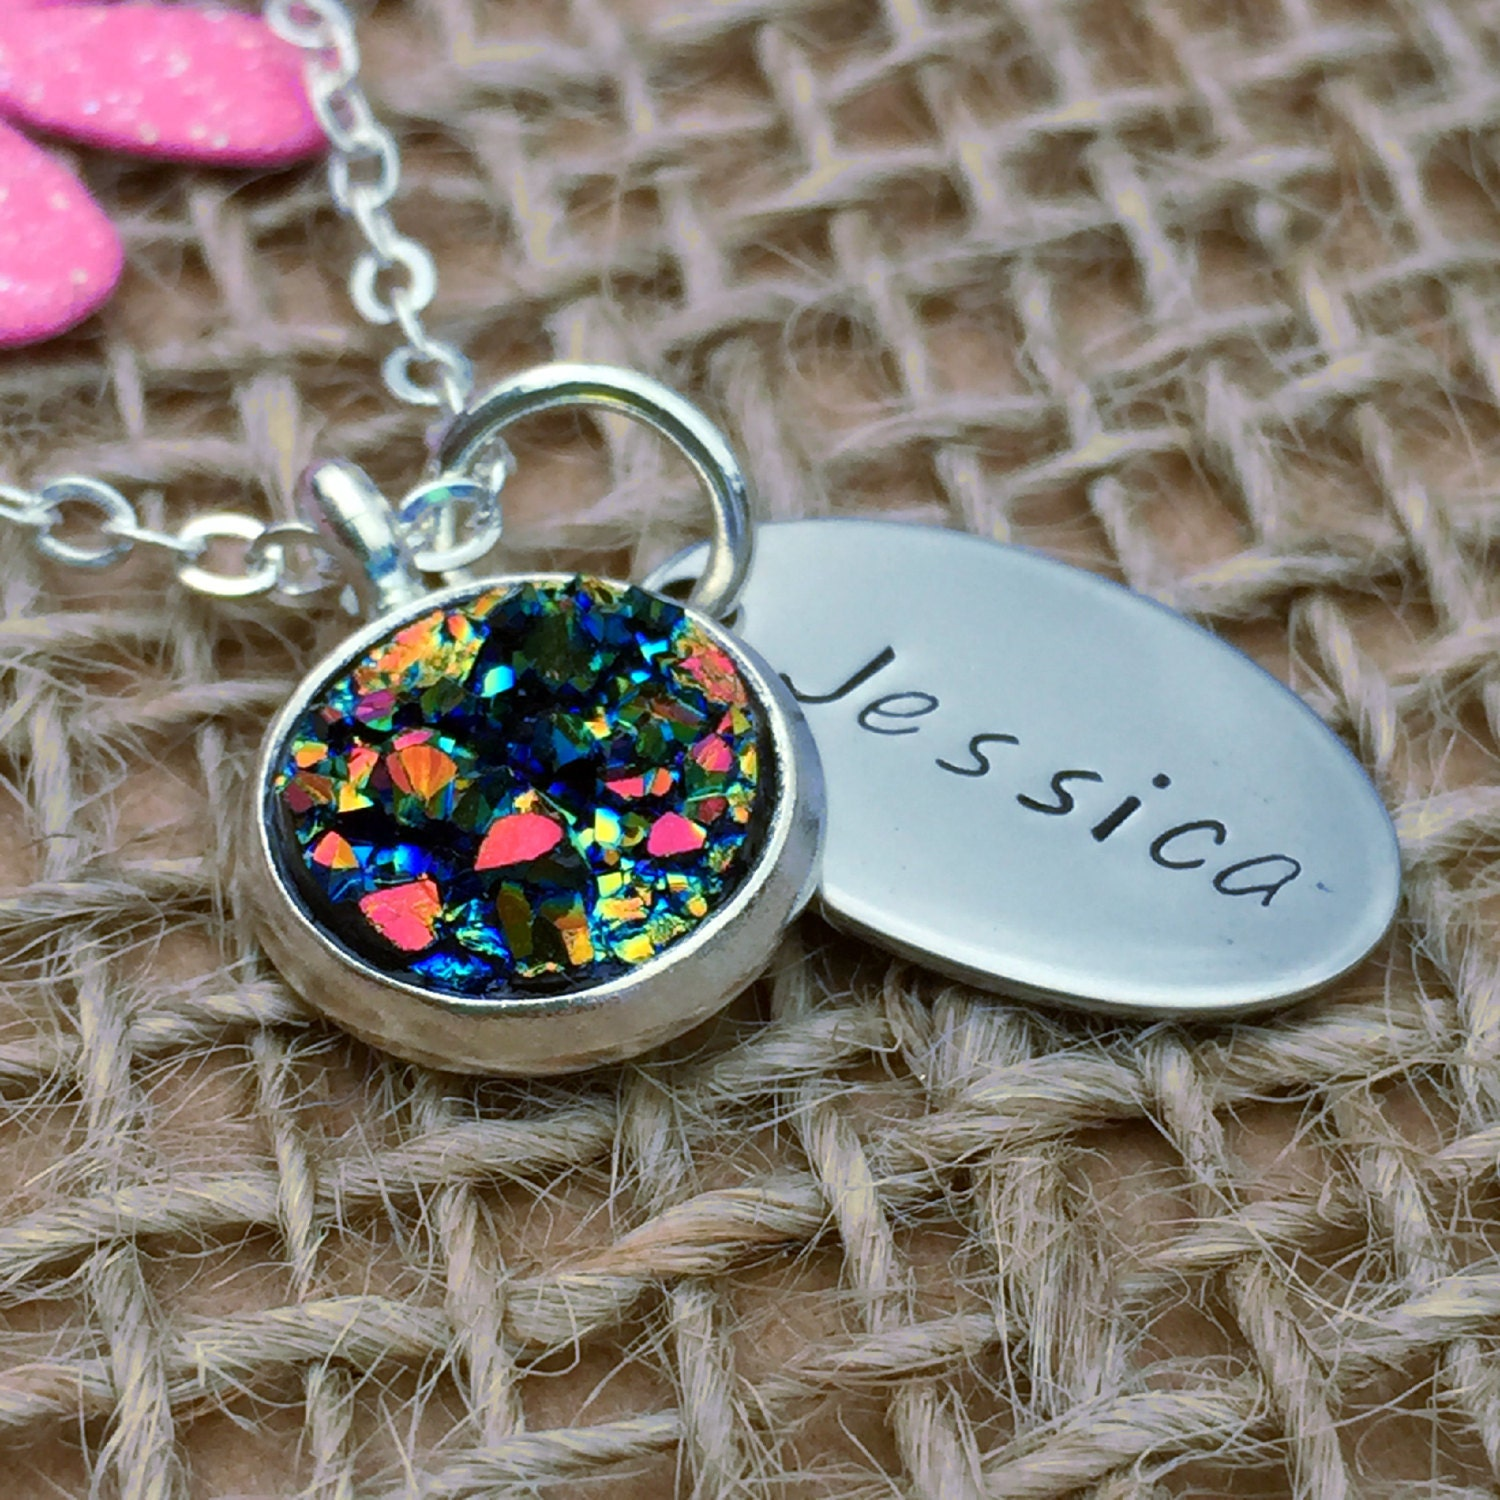 Personalised faux druzy pendant necklace personalised necklace personalised faux druzy pendant necklace personalised necklace birthday gift birthday gift ideas for negle Choice Image